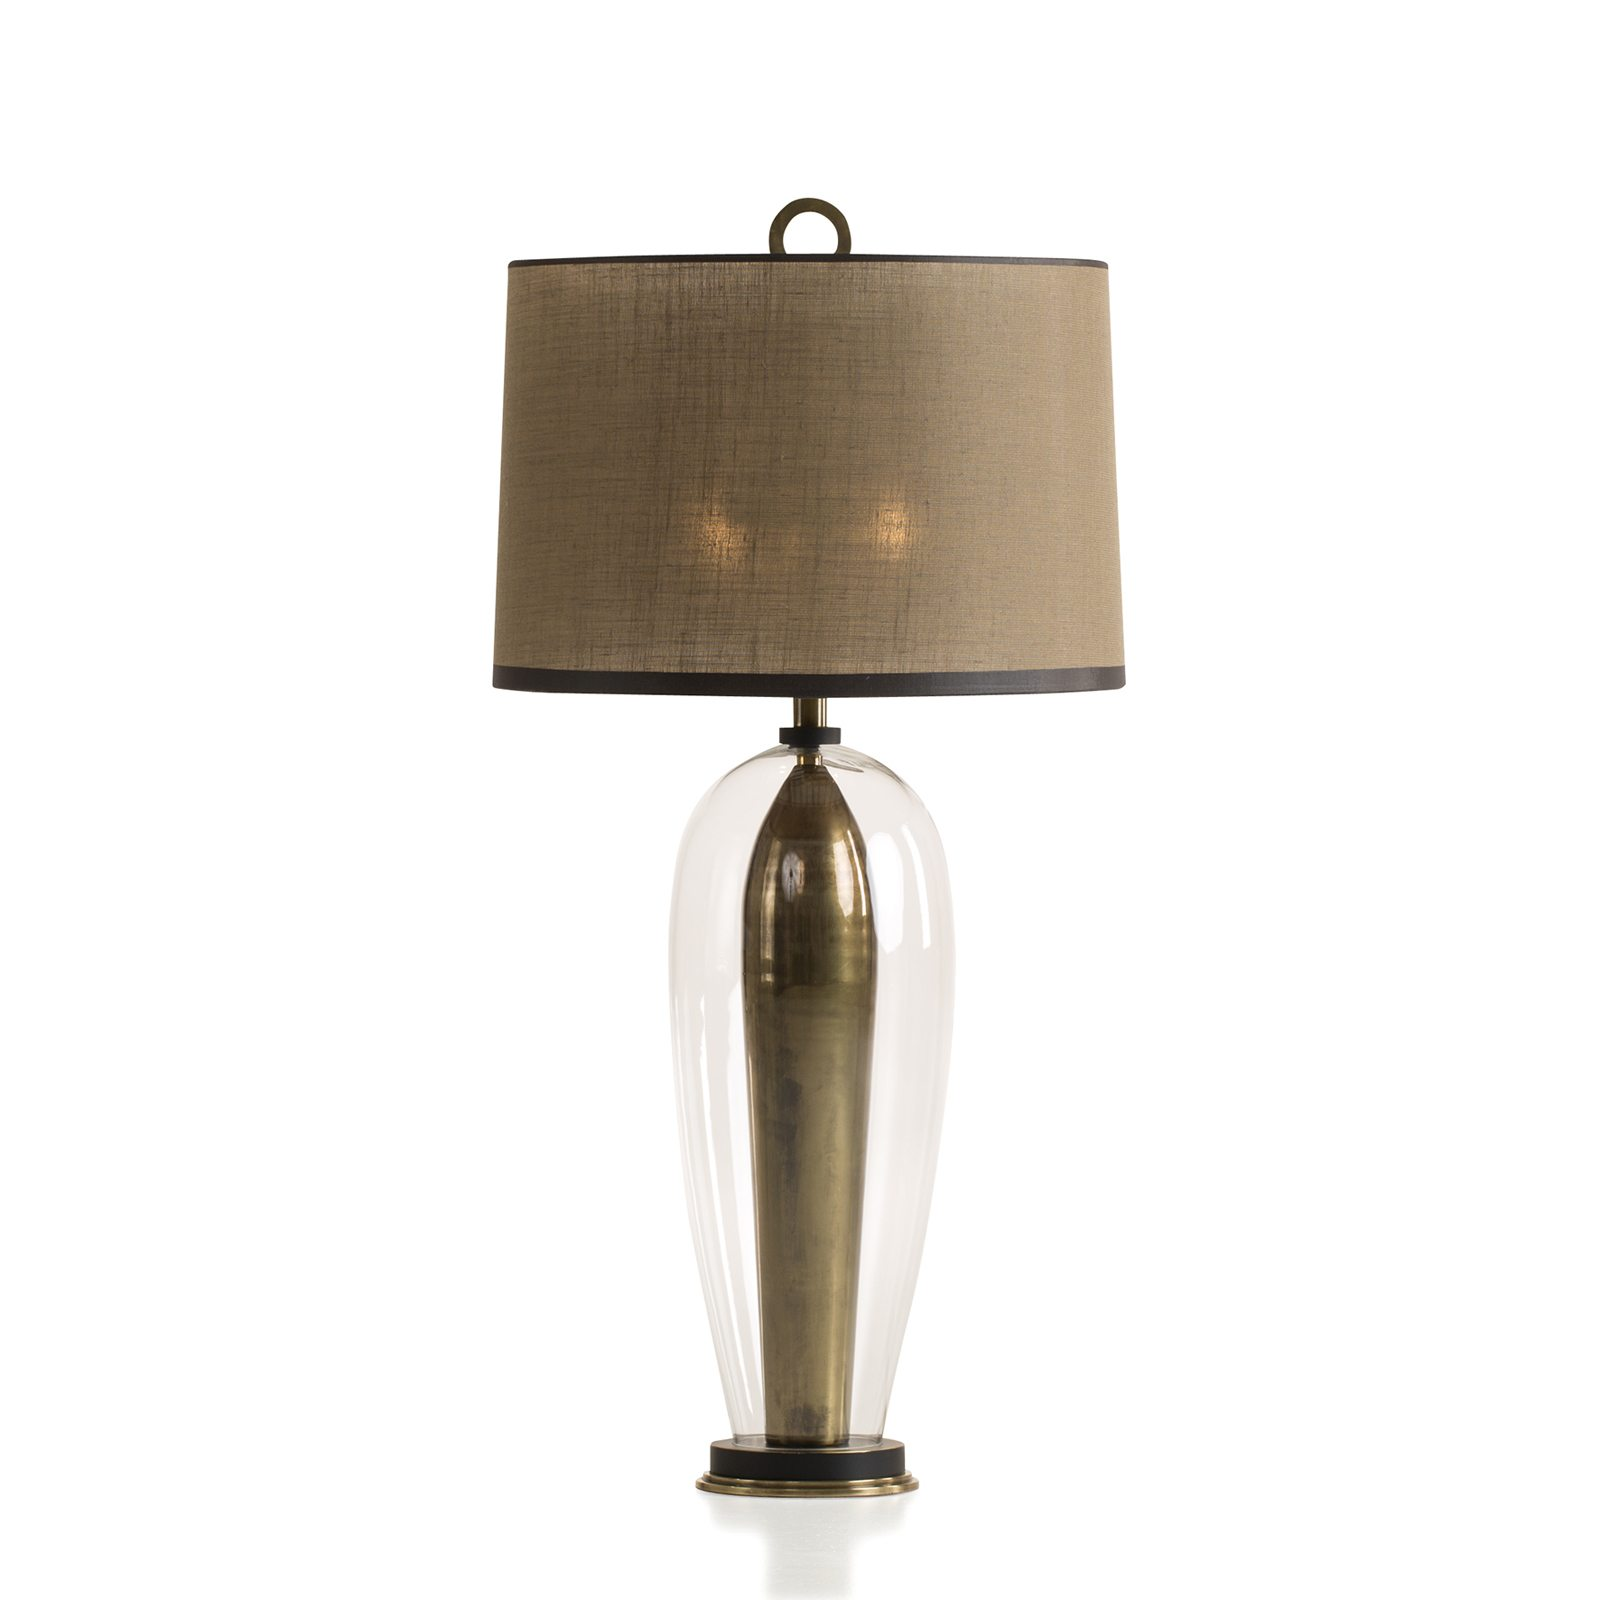 Halston Table Lamp by Bonham & Bonham